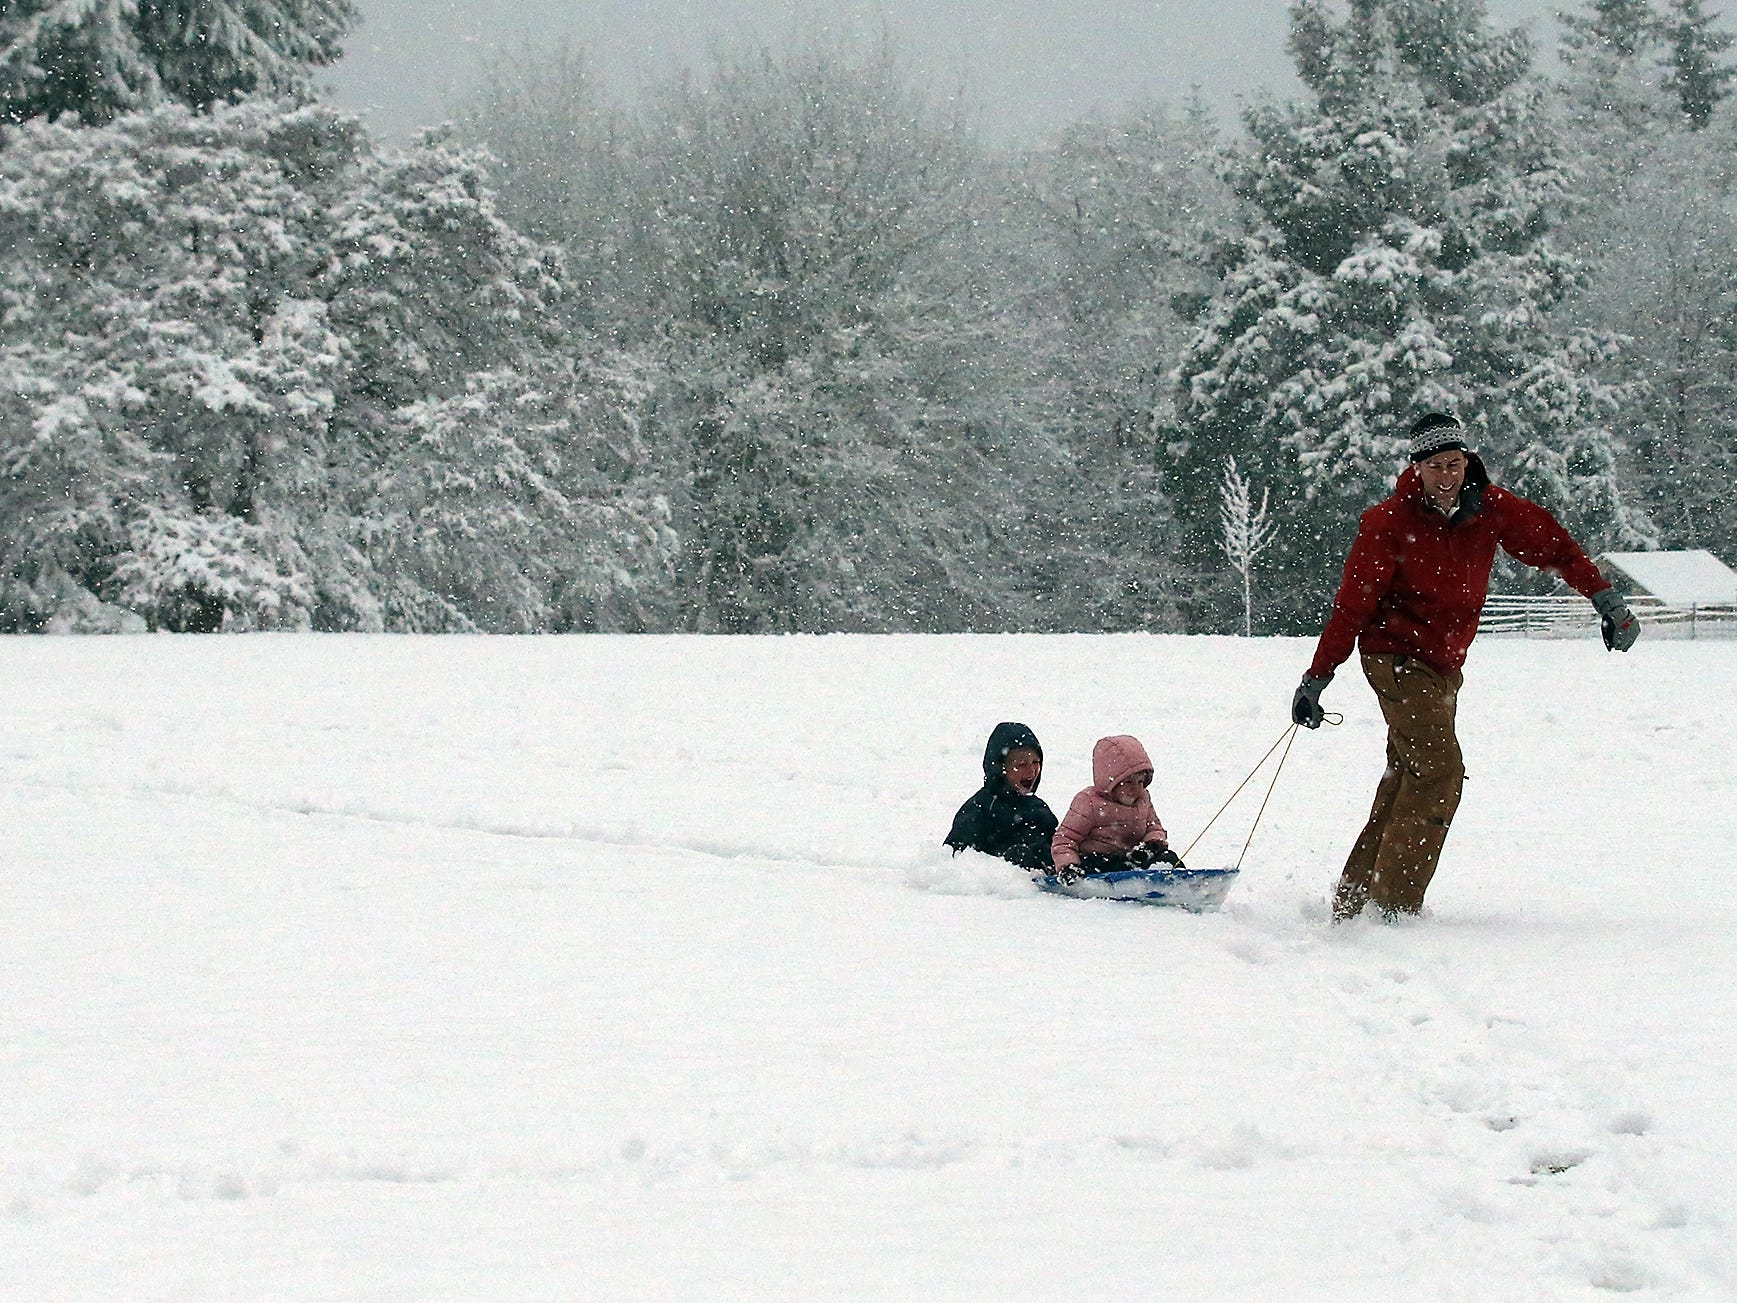 Garrett Stephan pulls daughter Sonya, 3,  and son Marcus, 6, in a sled as the family enjoys the snow at Raab Park in Poulsbo on Sunday, February 3, 2019.